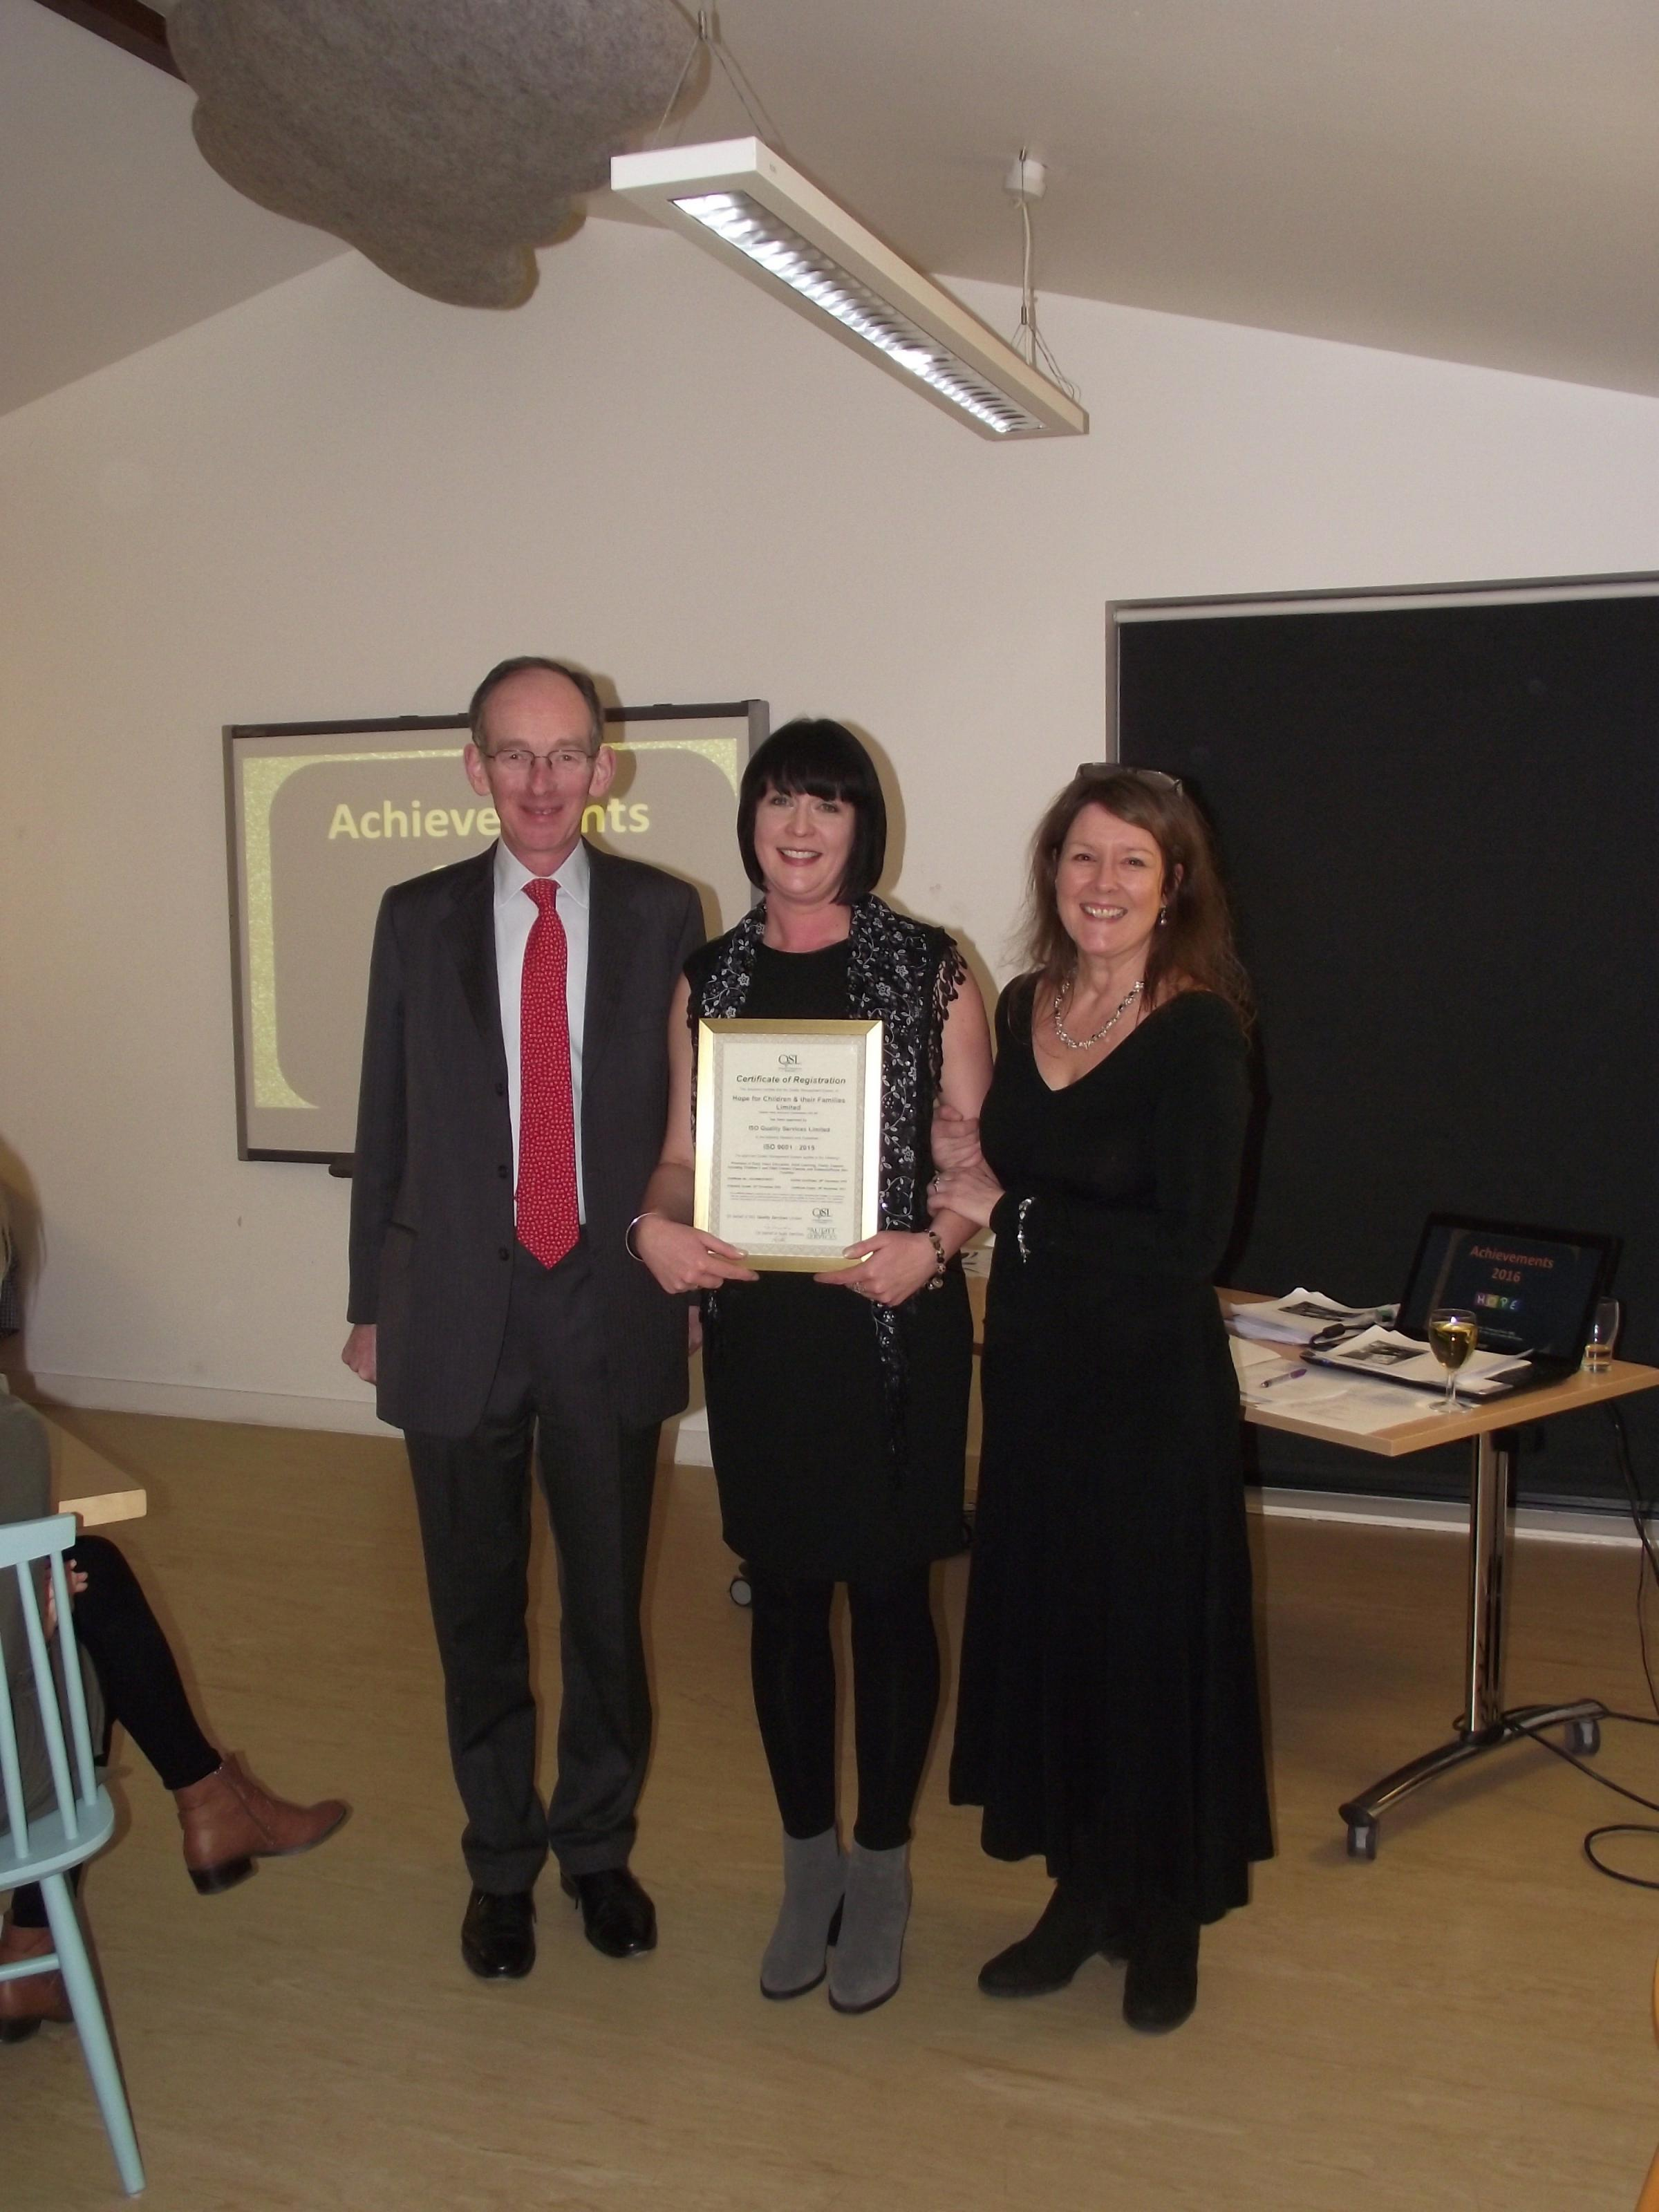 From left: Sir Andrew MacFarlane, patron, Anna Beddows, admin team leader and Sarah Eardley,chief executive officer at the HOPE Family Centre awards event.